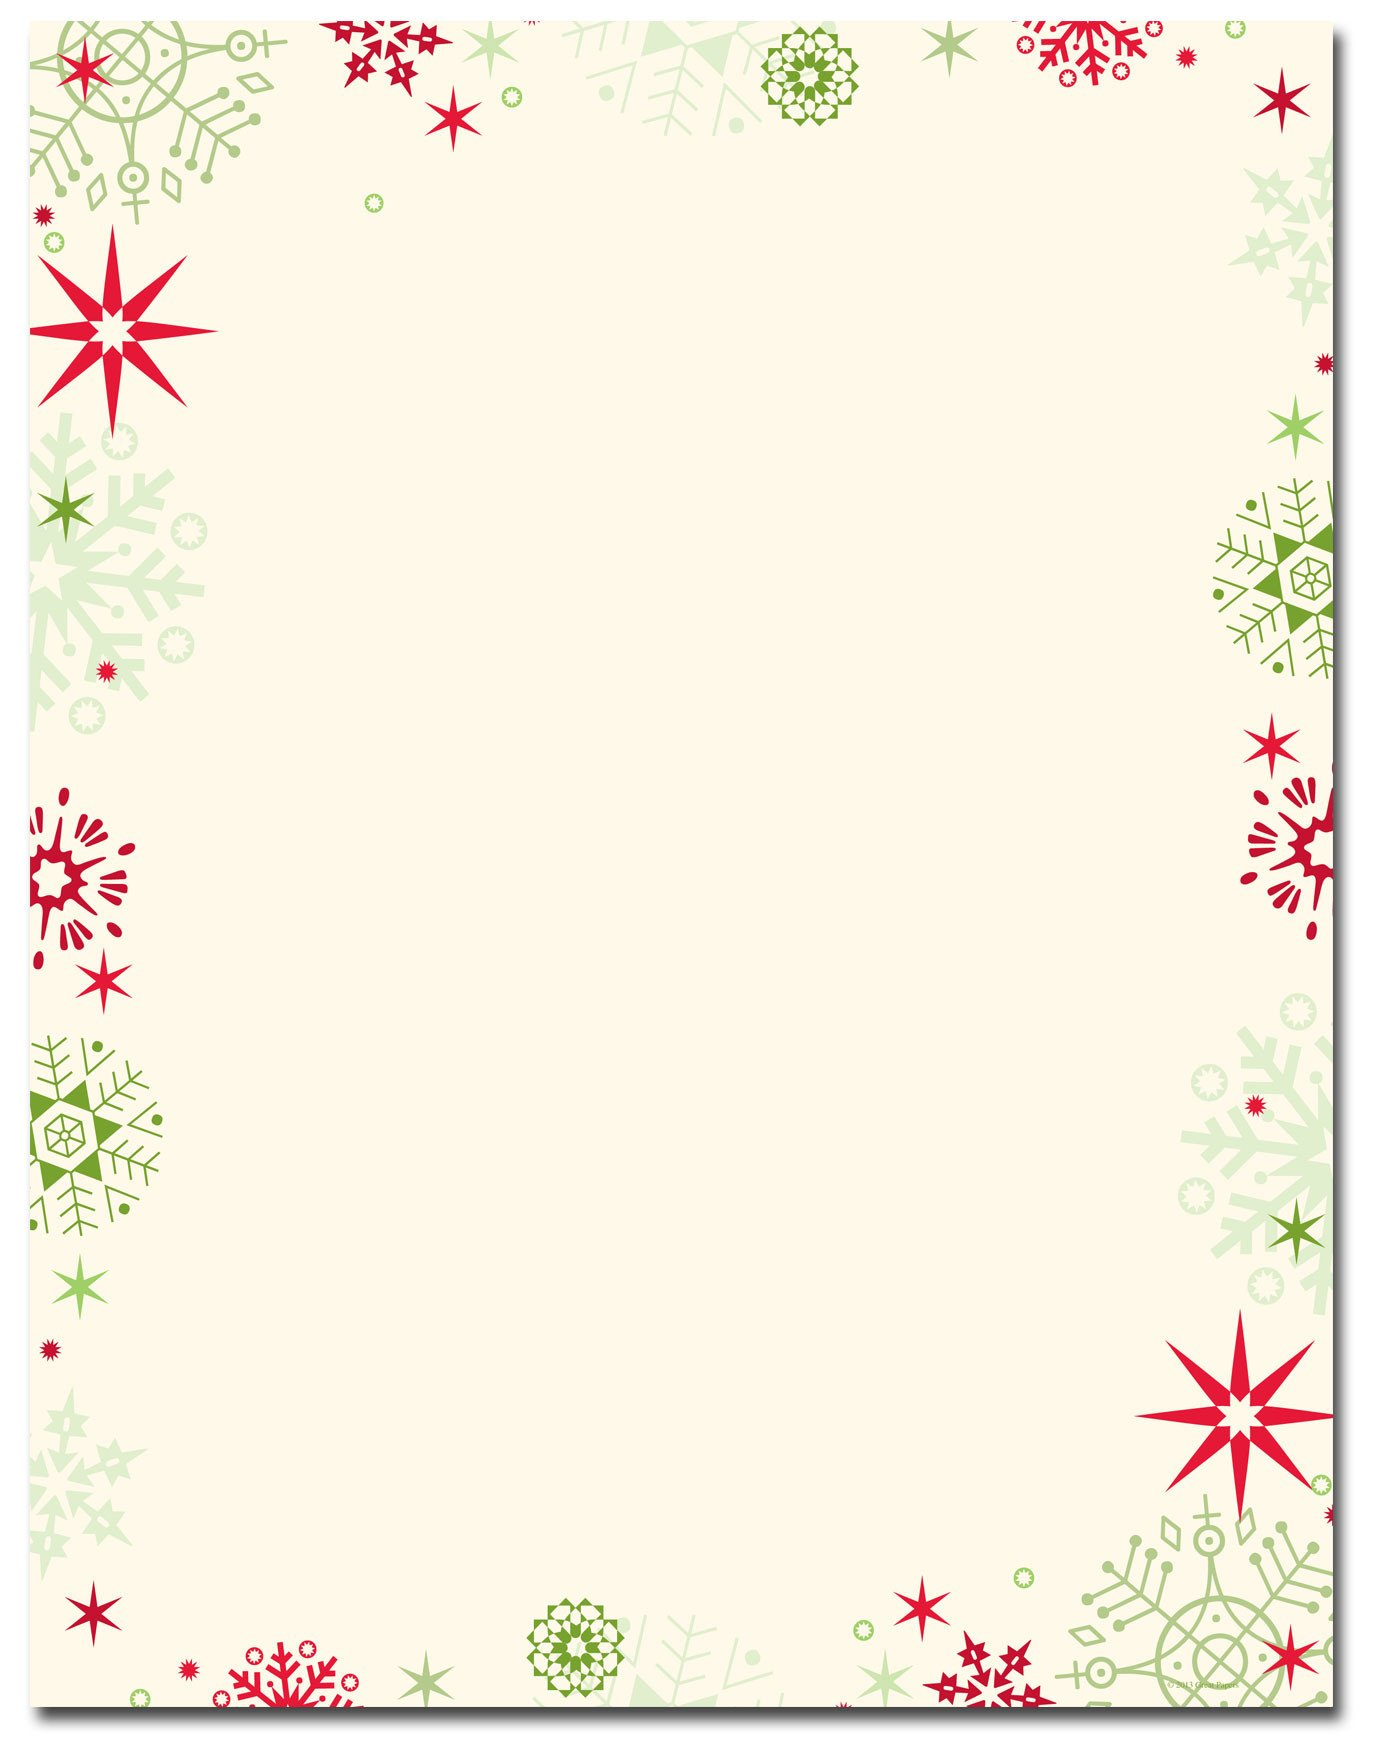 Free Printable Christmas Stationery Christmas Stationery Red & Green Flakes Letterhead